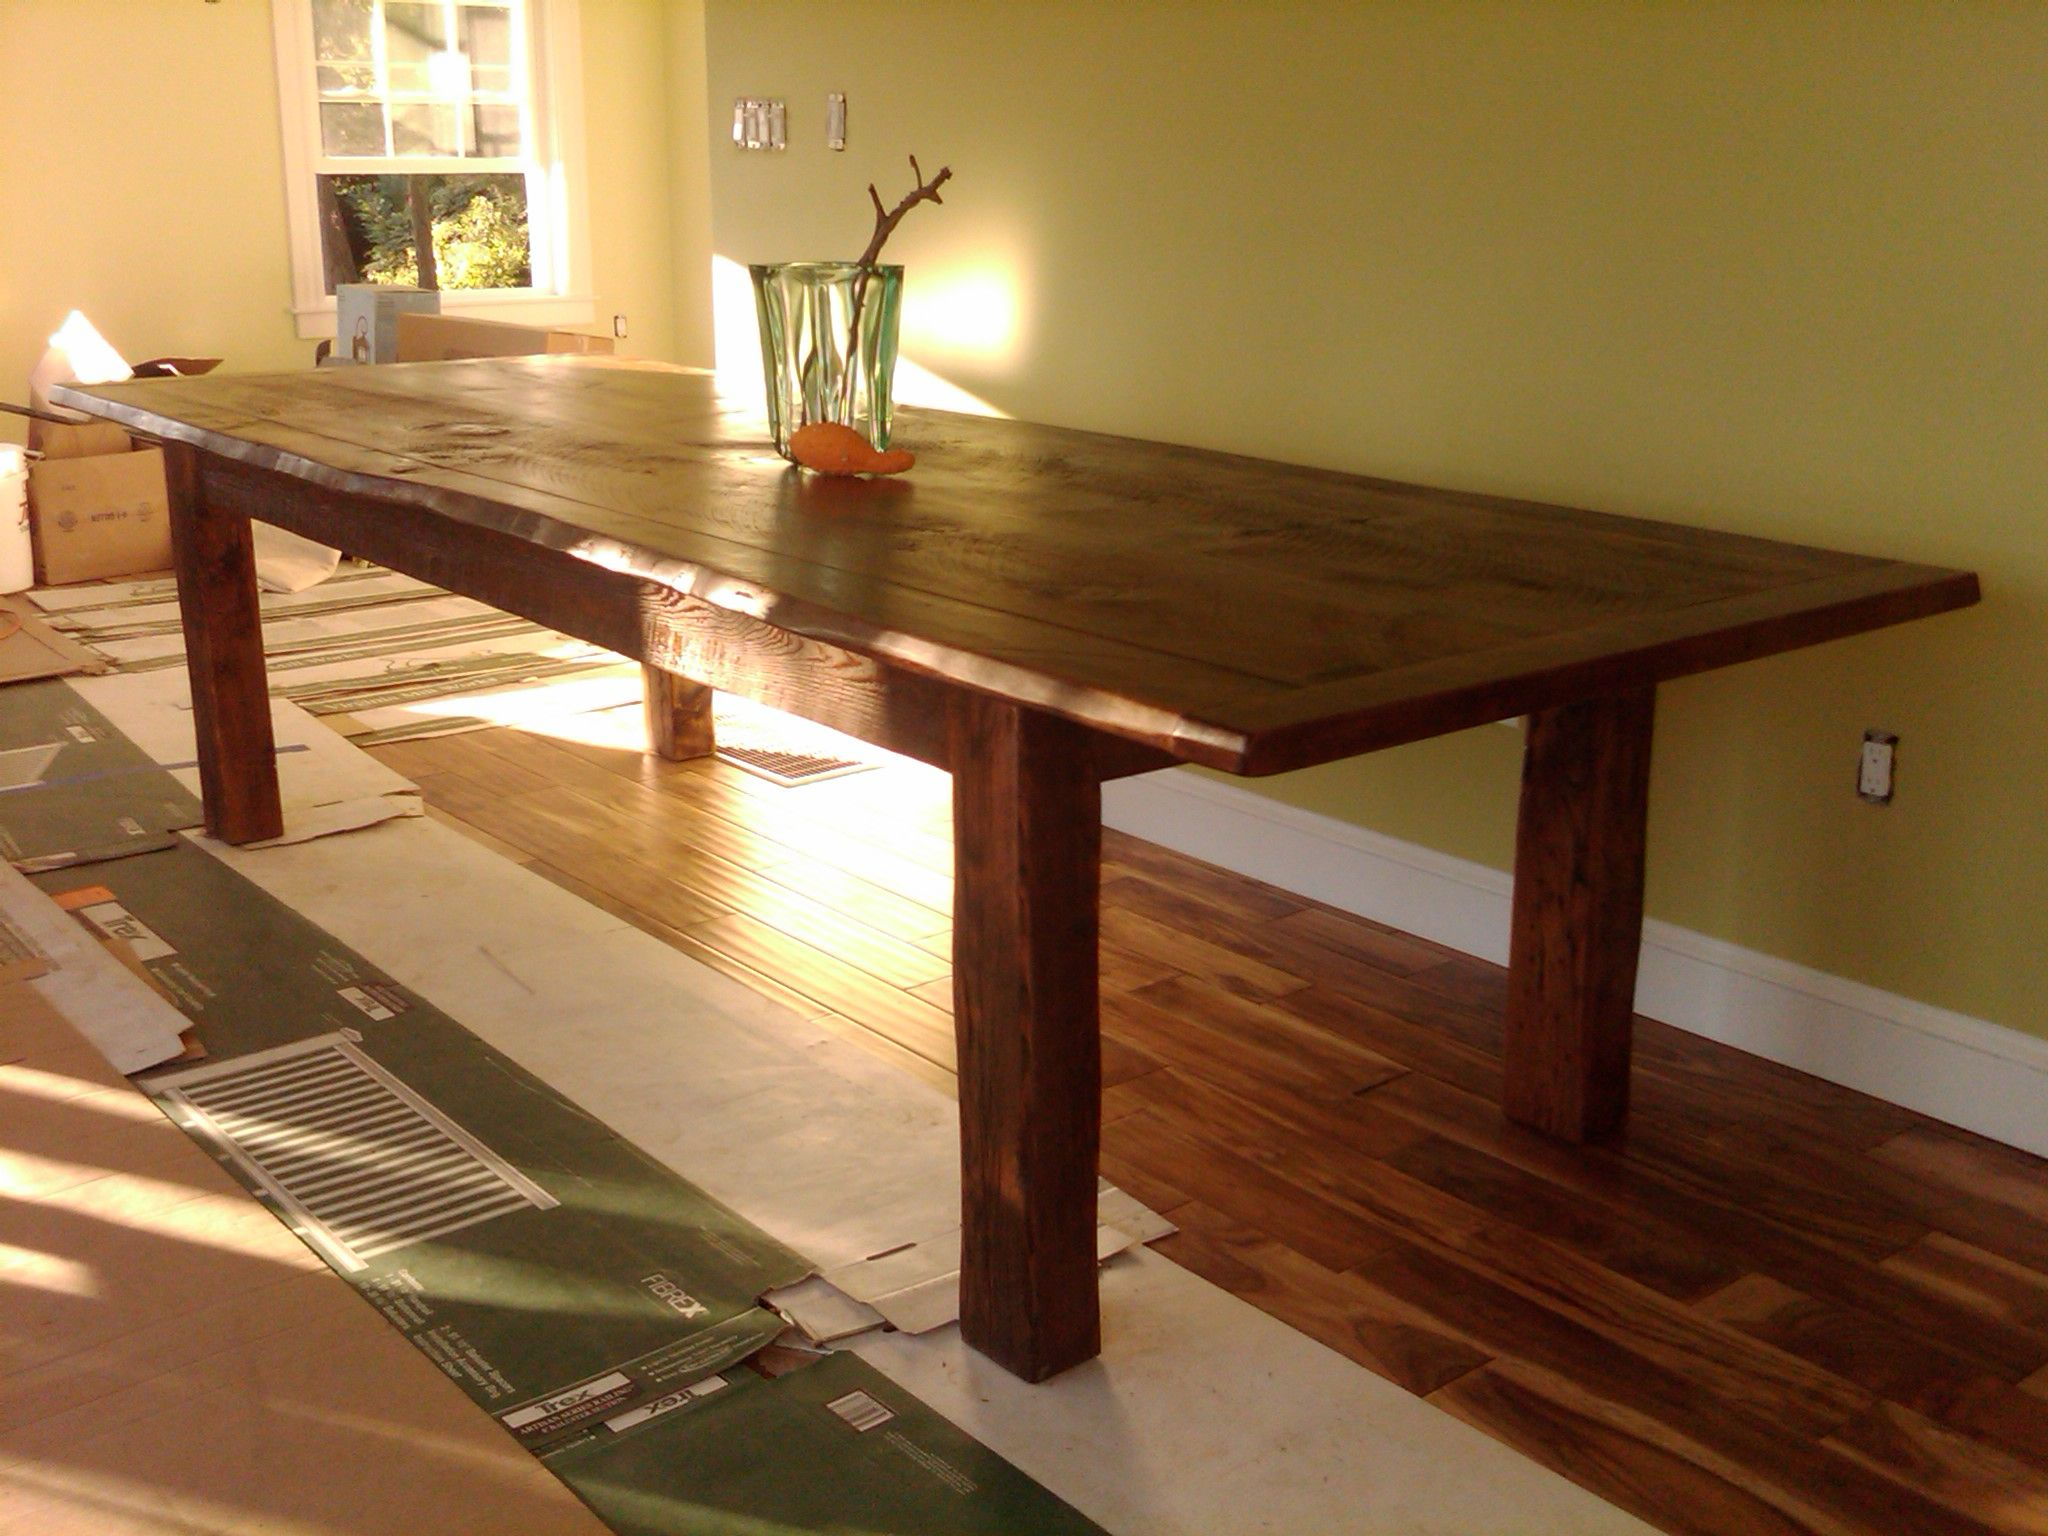 This Big Dining Table Has All The Right Things Going For It The Proportions Are Correct The Overhang On Th Rustic Kitchen Tables Big Dining Table Farm Table